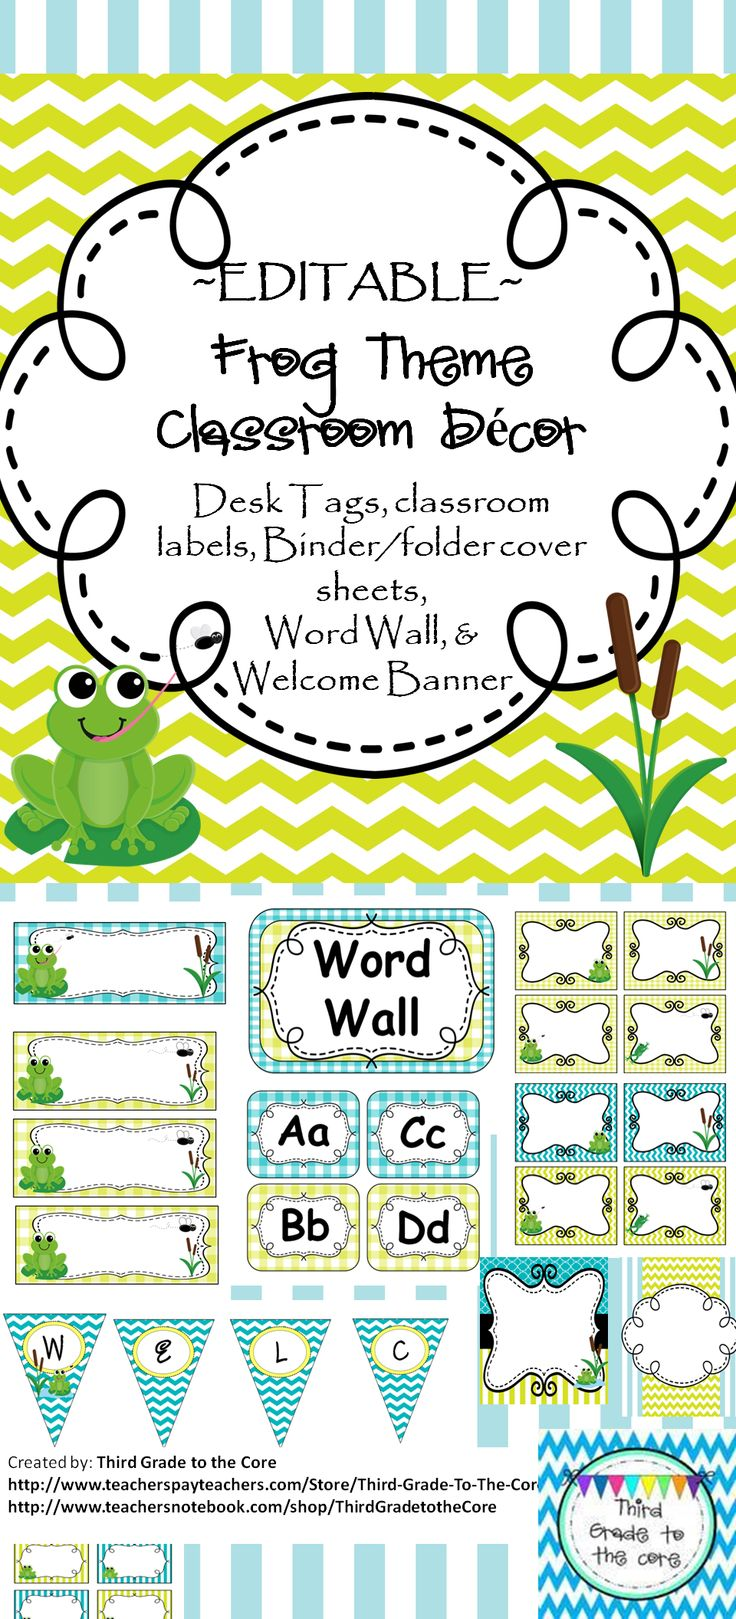 "Brighten up your class with these colorful decorations! All labels and binder covers are editable. This classroom set includes 2 different style Desk Tags, classroom labels in different sizes and styles, 3 different Binder/folder cover sheets that can be used for teacher or student binders, Word Wall set, And a ""Welcome"" Bunting Banner."